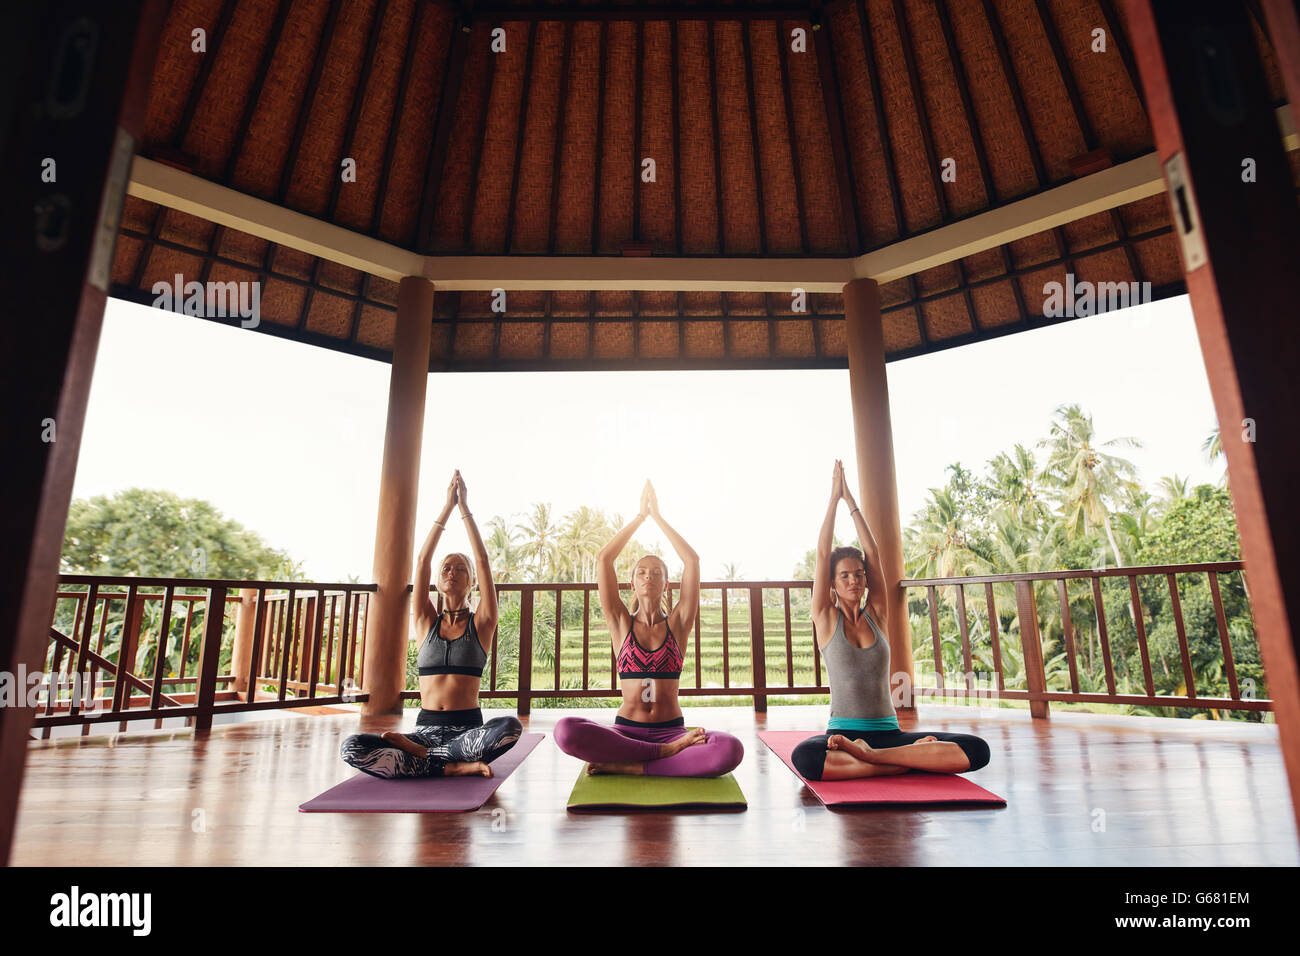 Three young women practicing yoga in a gym sitting cross legged on their mats and meditating. Group of people doing - Stock Image